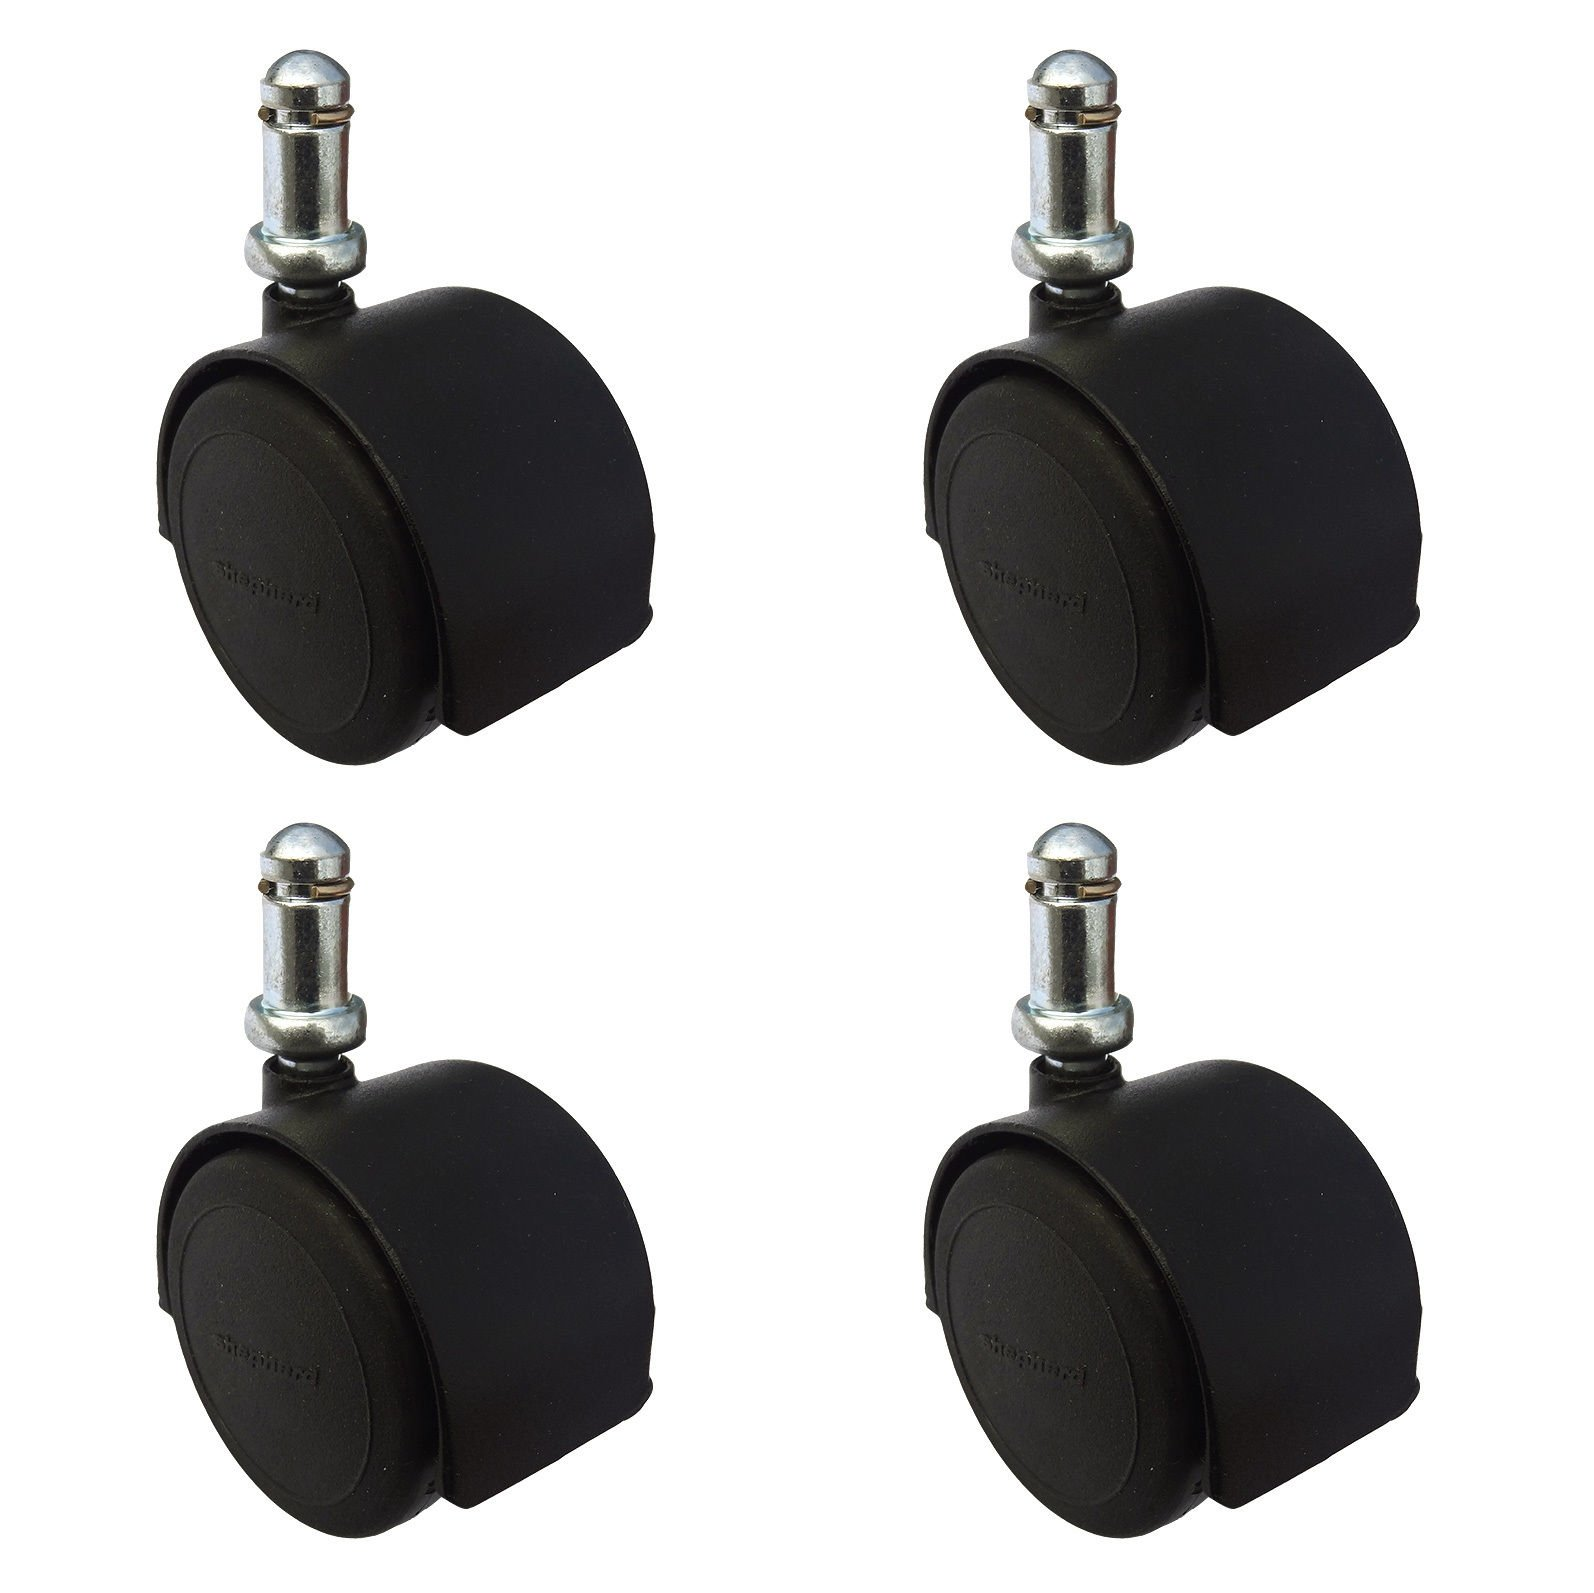 Heavy Duty Office Chair Casters 2-3/8'' (60mm) Pacer Hardwood Floor Safe Urethane Wheels Set of 4